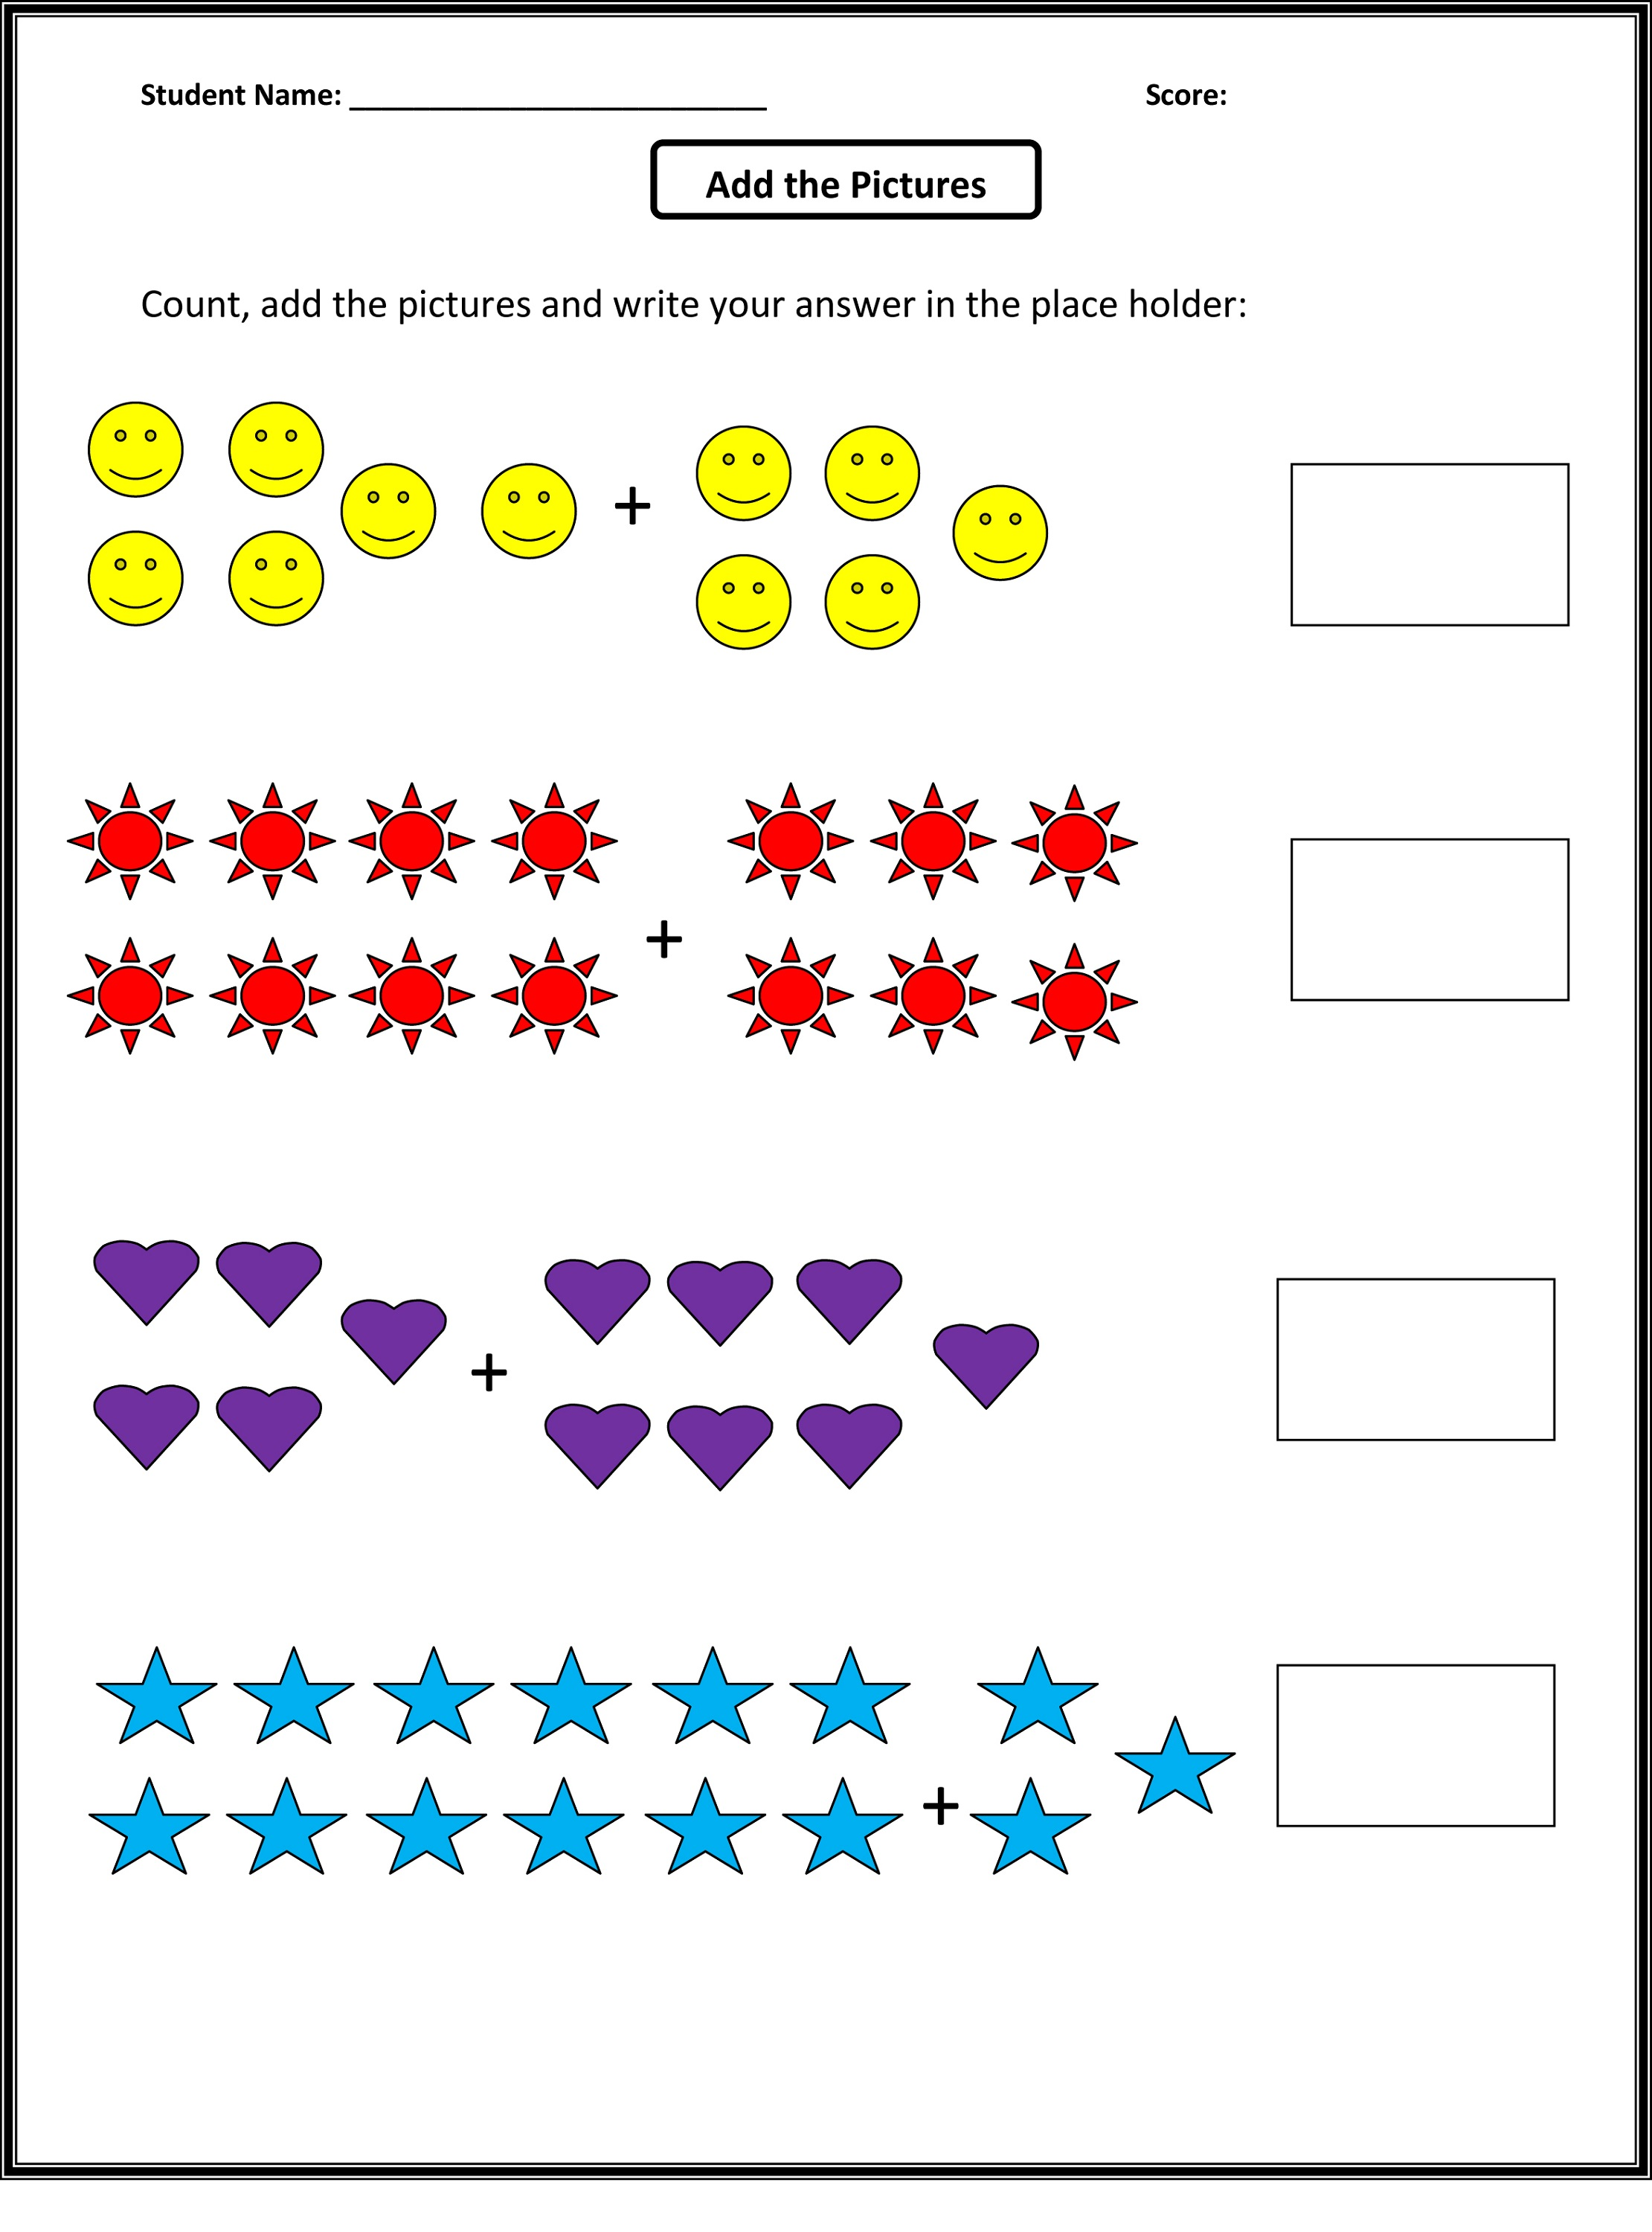 Worksheet For Kids Maths Scalien – Worksheet for Kids Maths